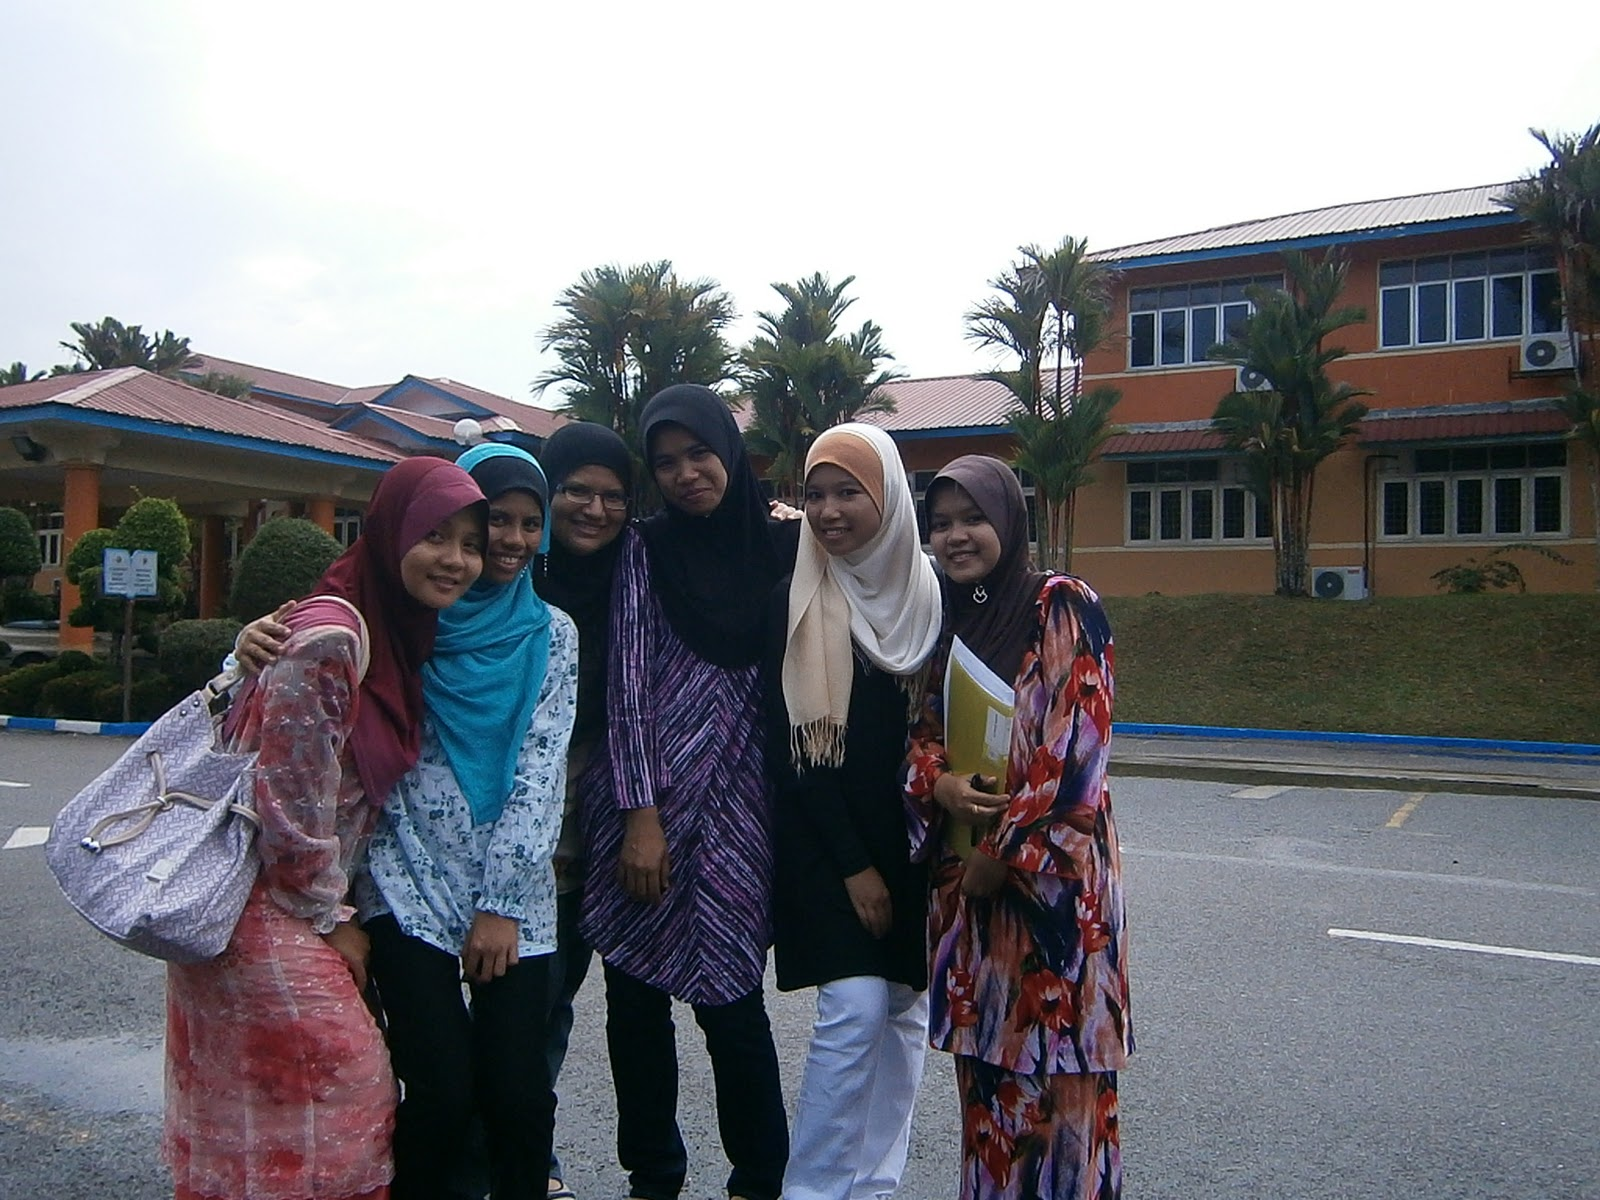 My kolej girl - 3 4